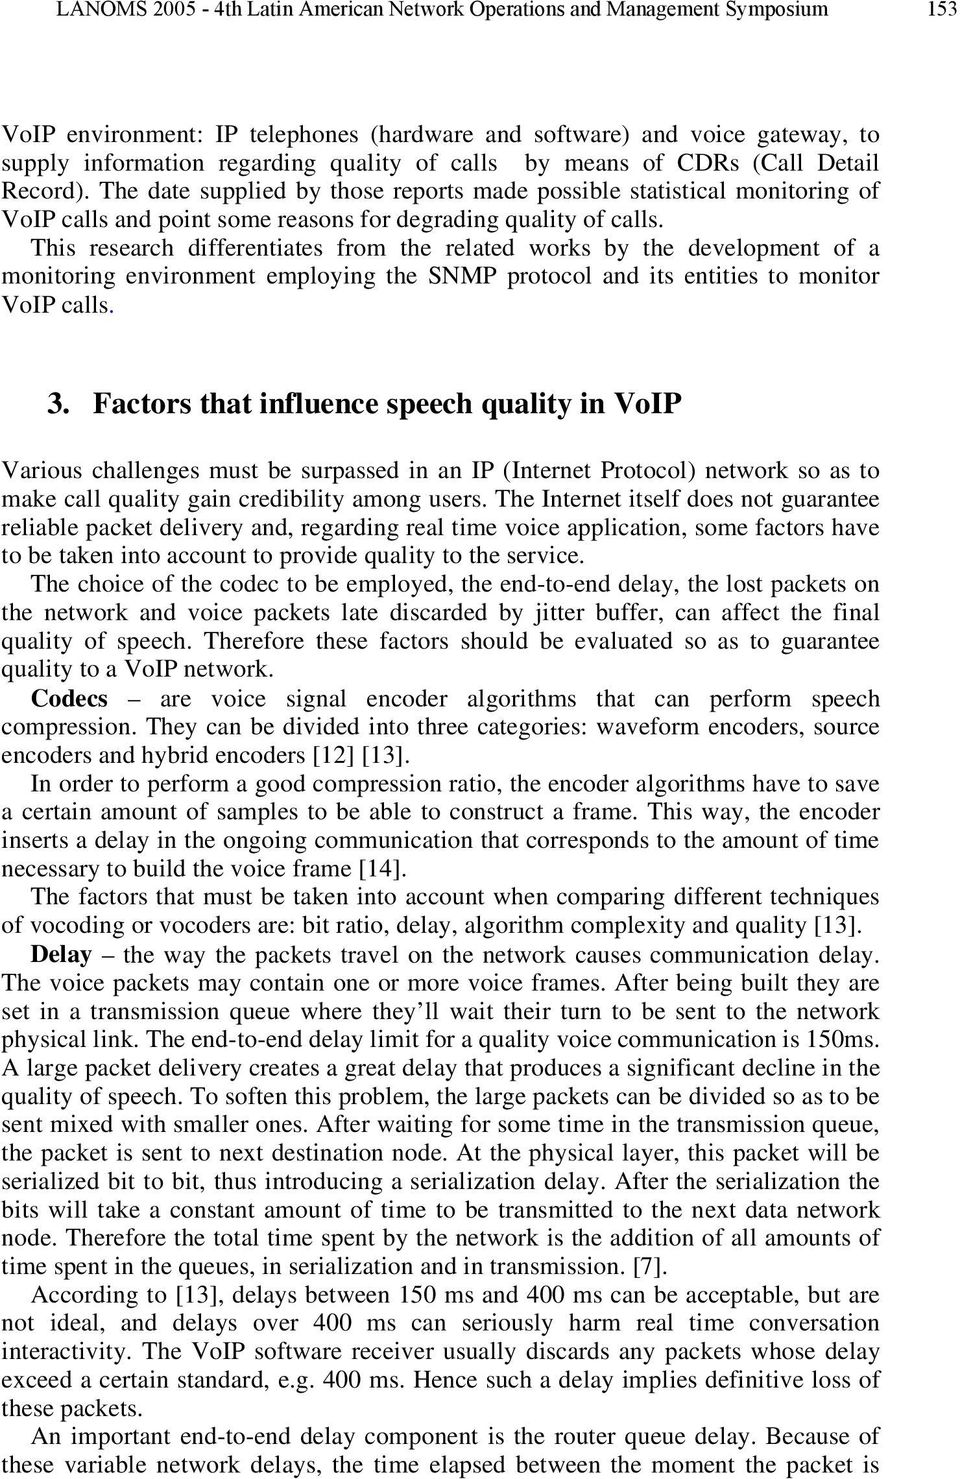 This research differentiates from the related works by the development of a monitoring environment employing the SNMP protocol and its entities to monitor VoIP calls. 3.